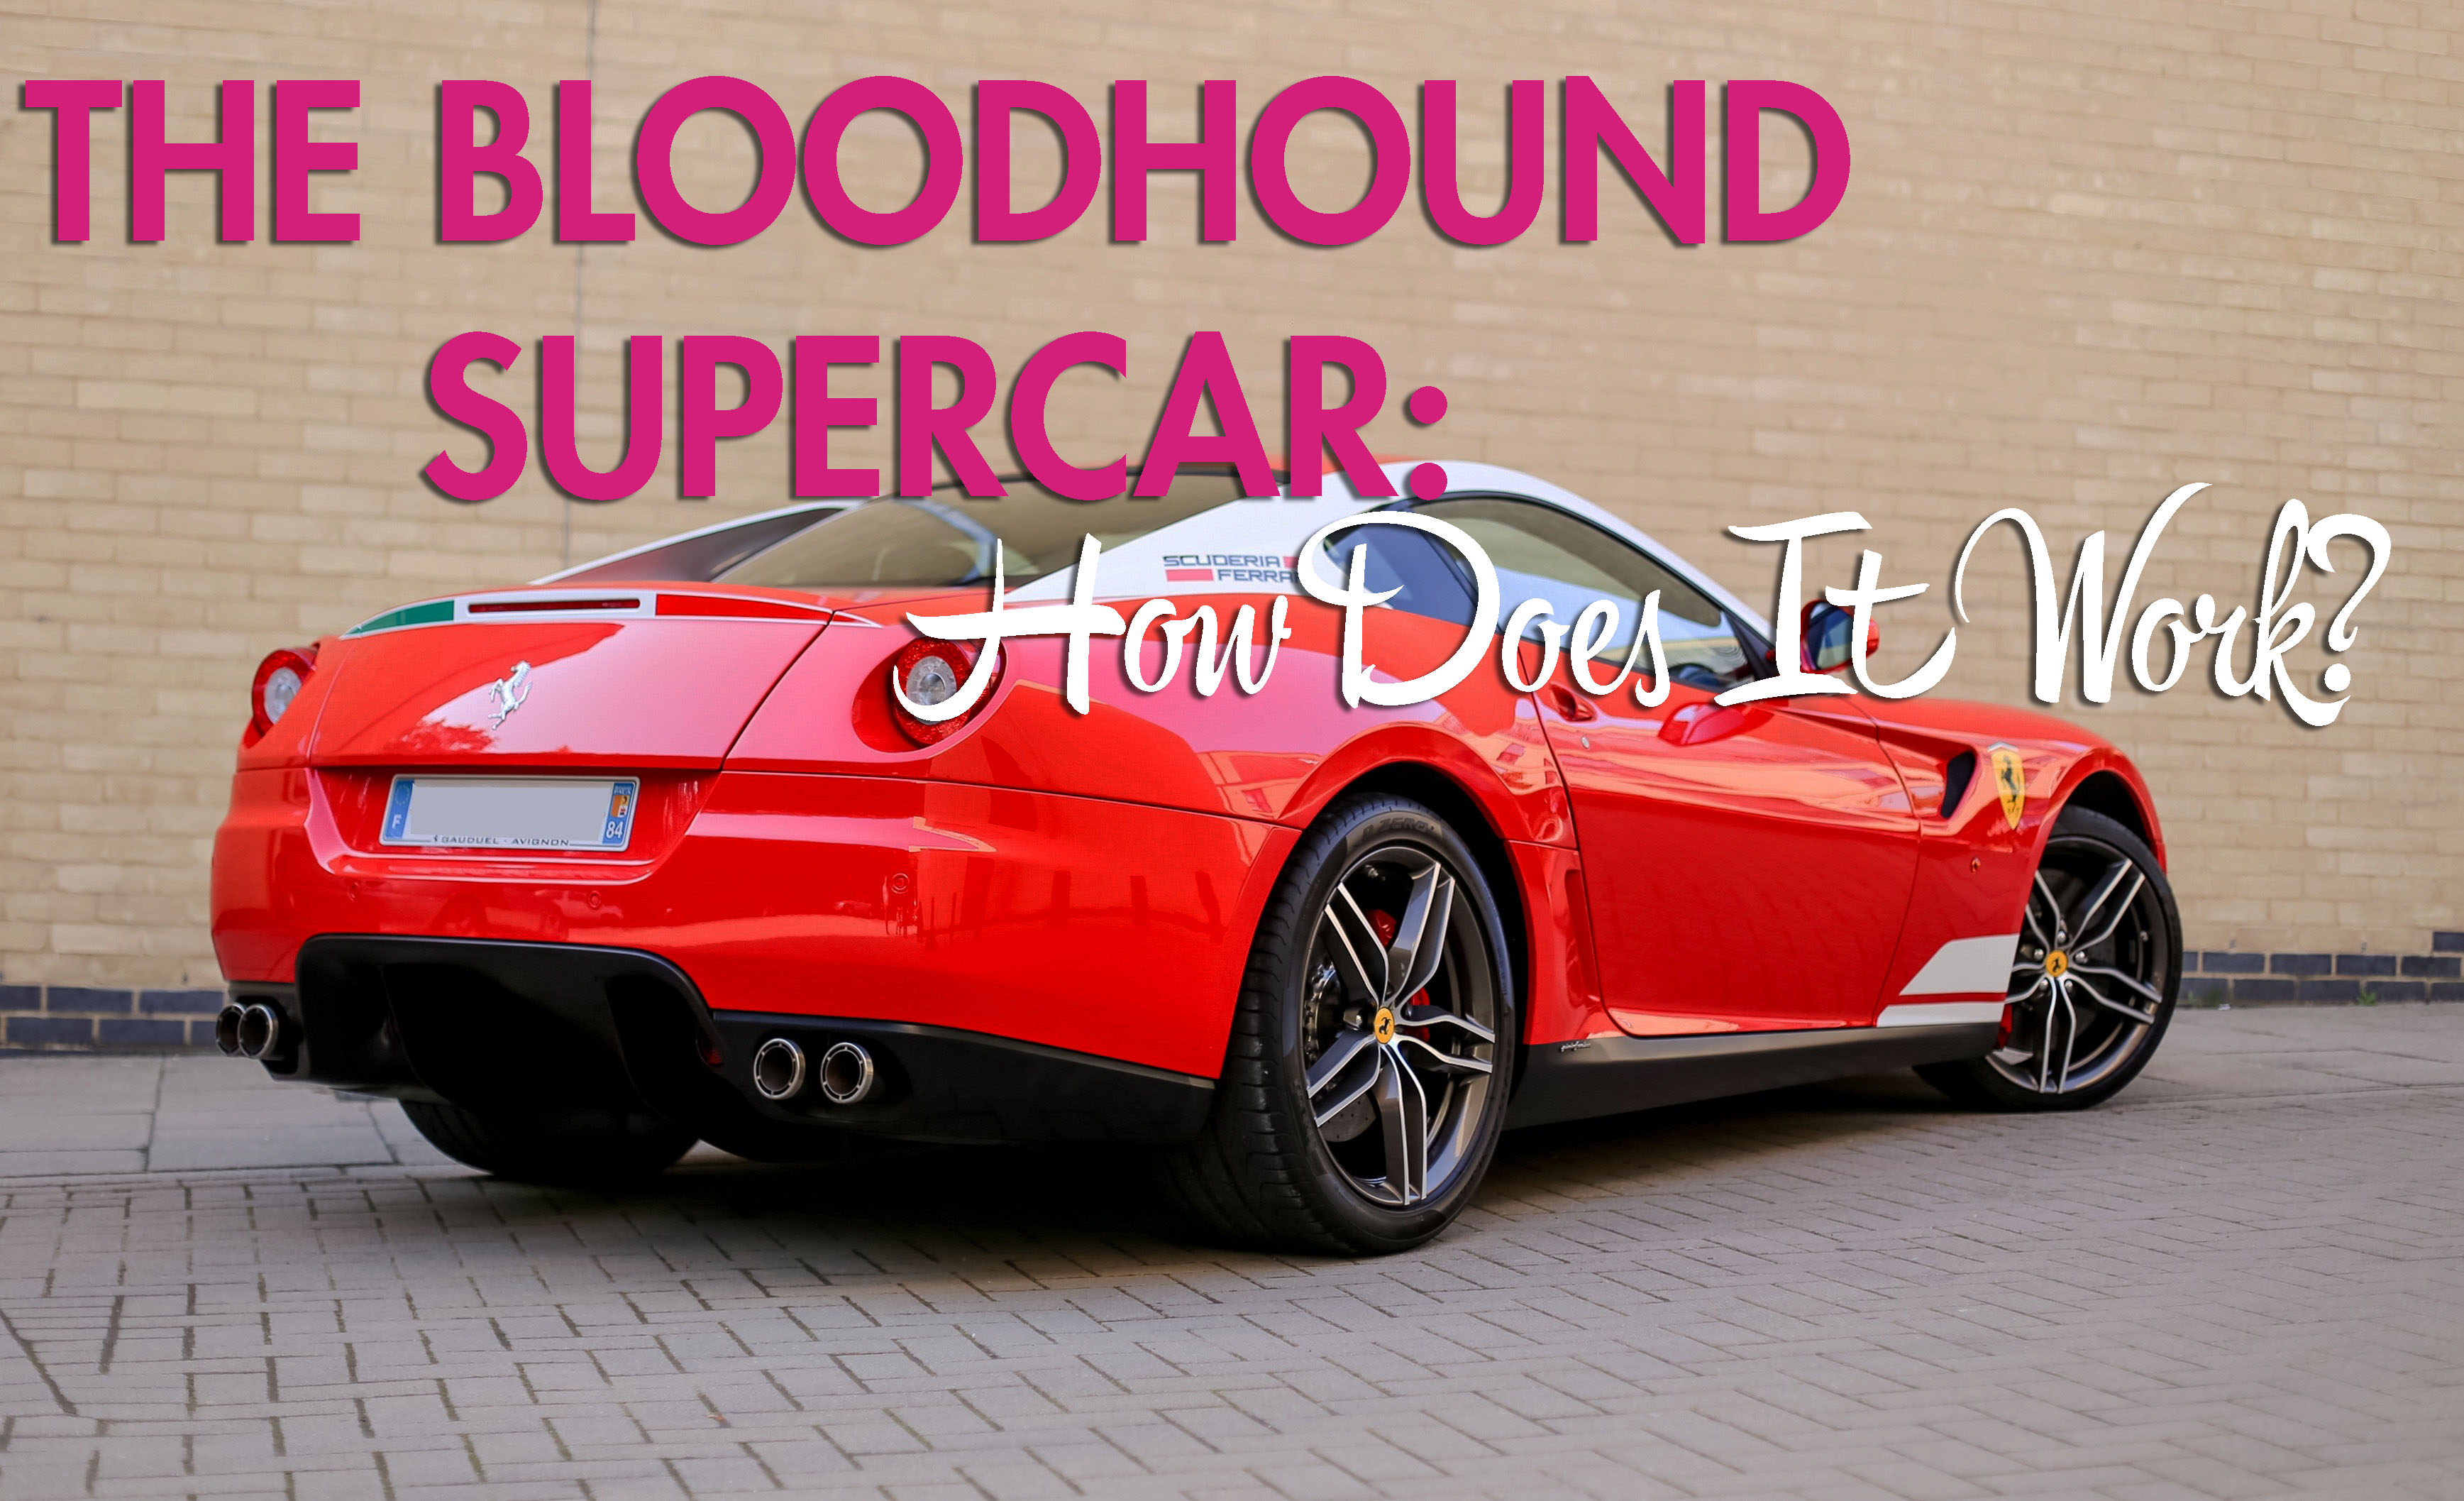 The bloodhound supercar and how it works